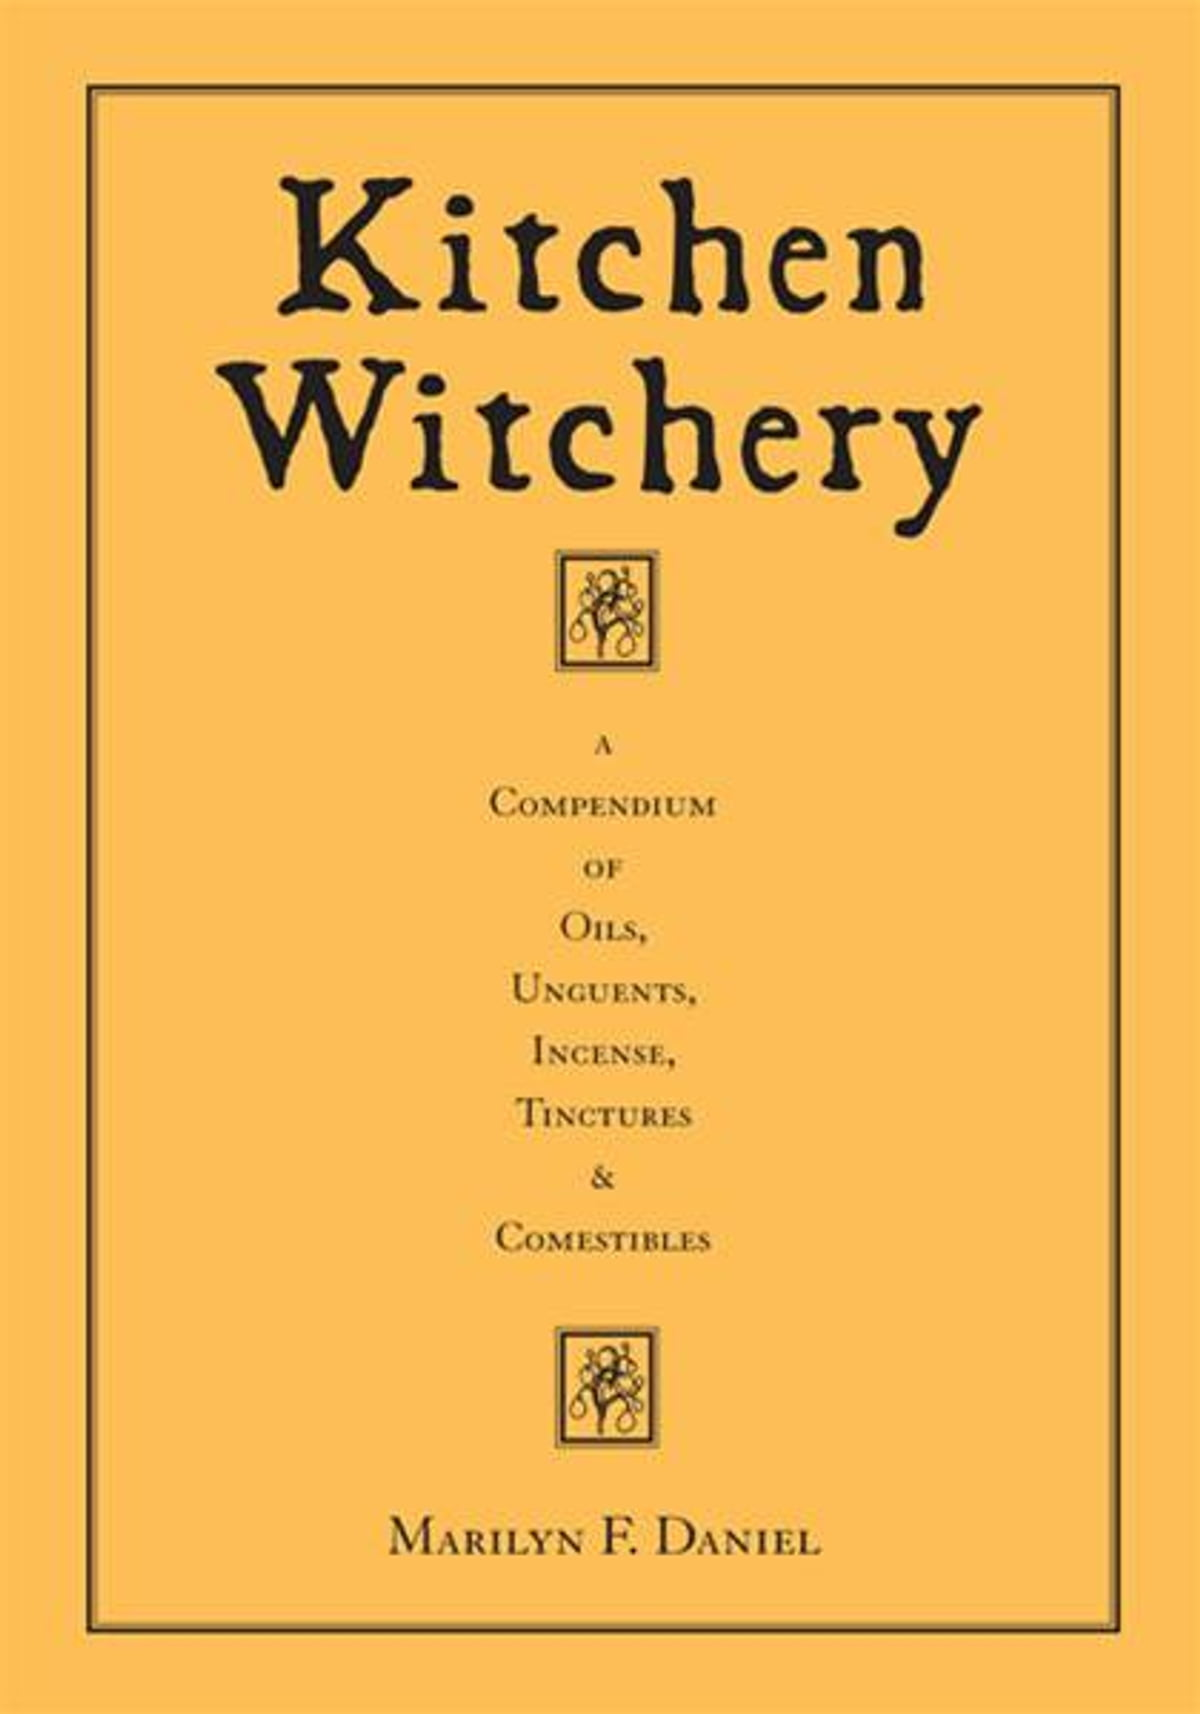 kitchen witchery a compendium of oils unguents incense tinctures comestibles ebook by marilyn f daniel 9781609250423 rakuten kobo - Kitchen Witchery